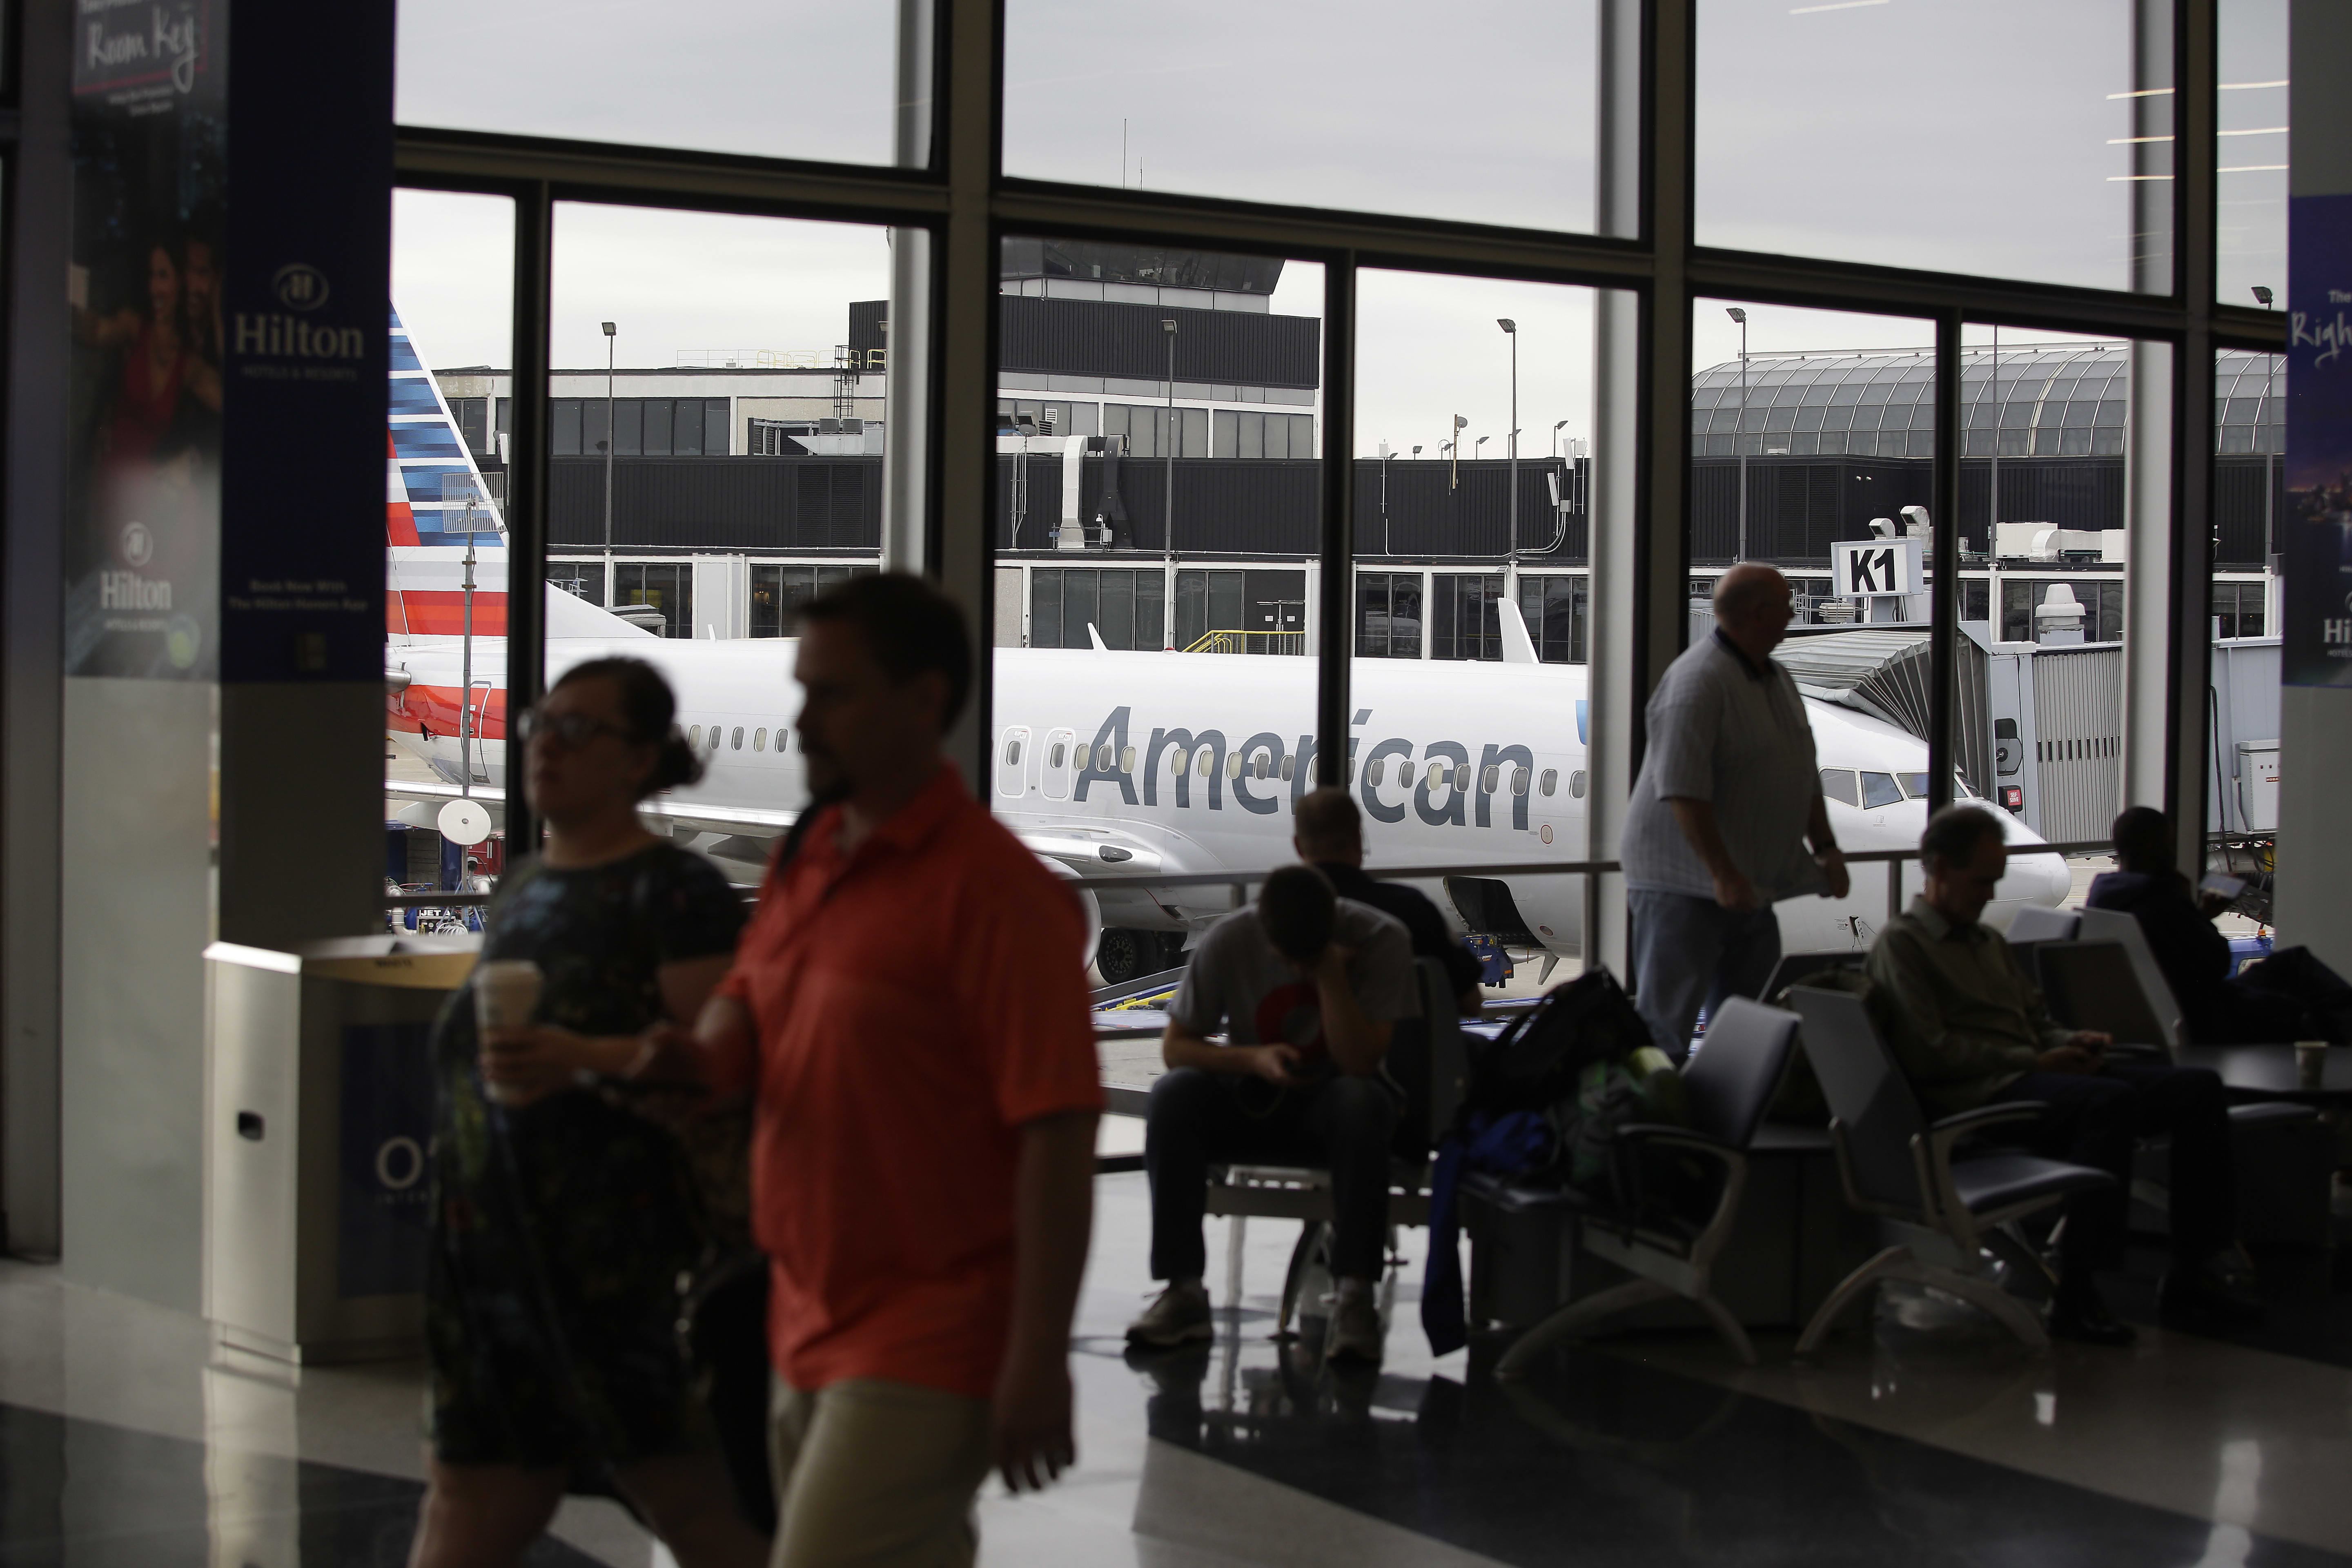 Bumped, canceled and delayed: Airline passengers face a rocky summer travel season